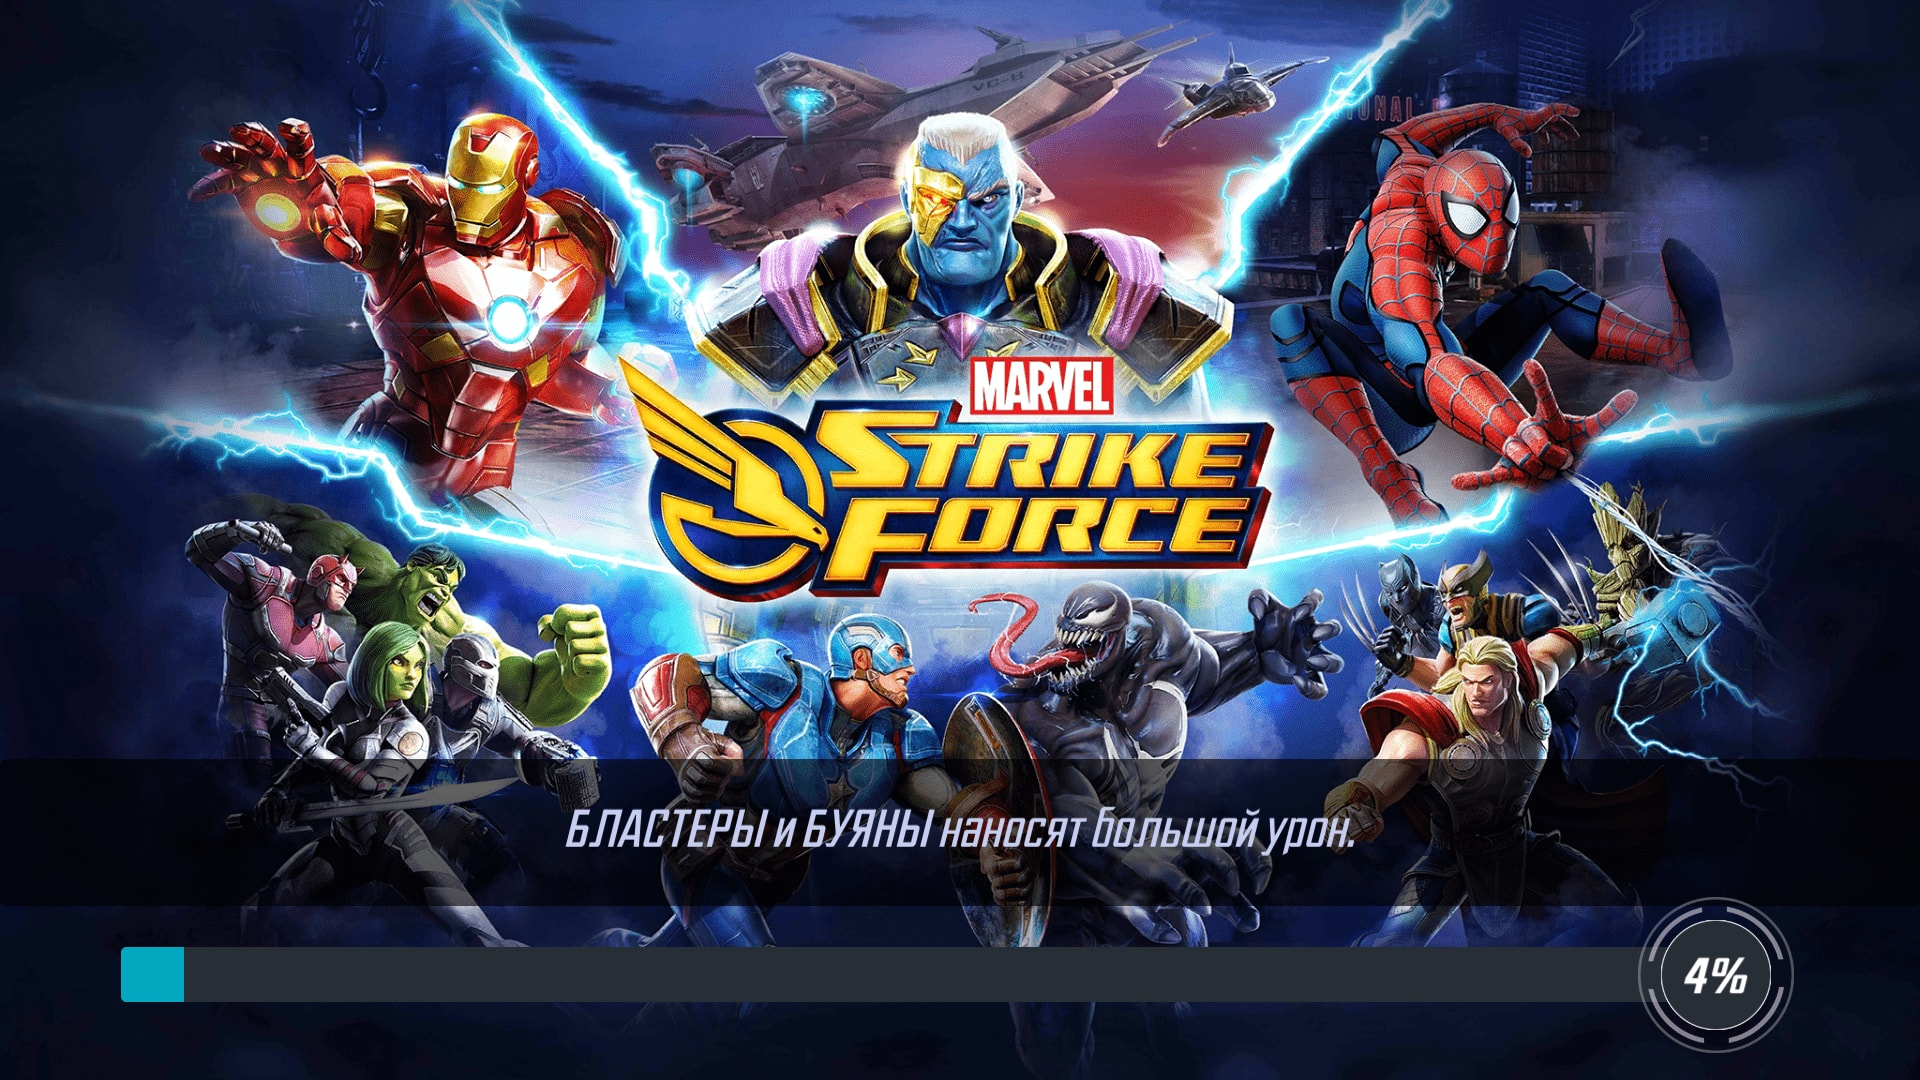 MARVEL: Strike Force